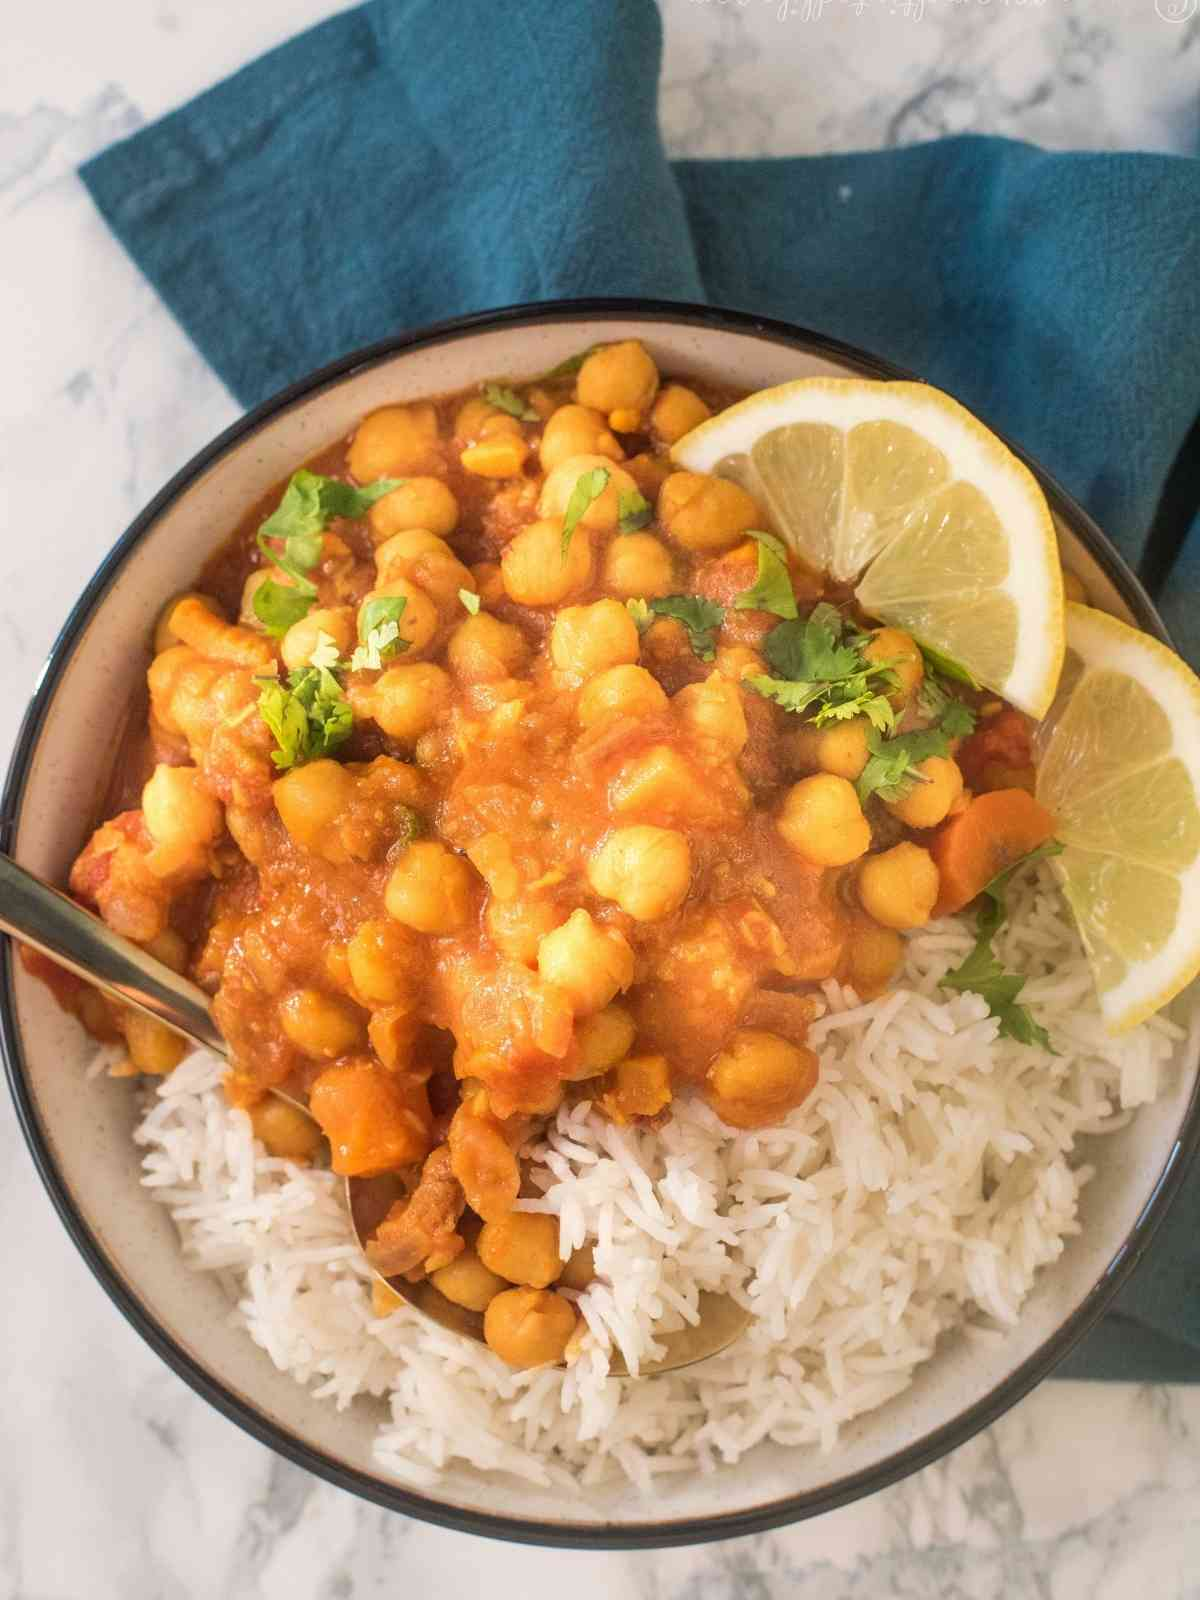 Chickpea tagine served in a bowl with rice and lemon